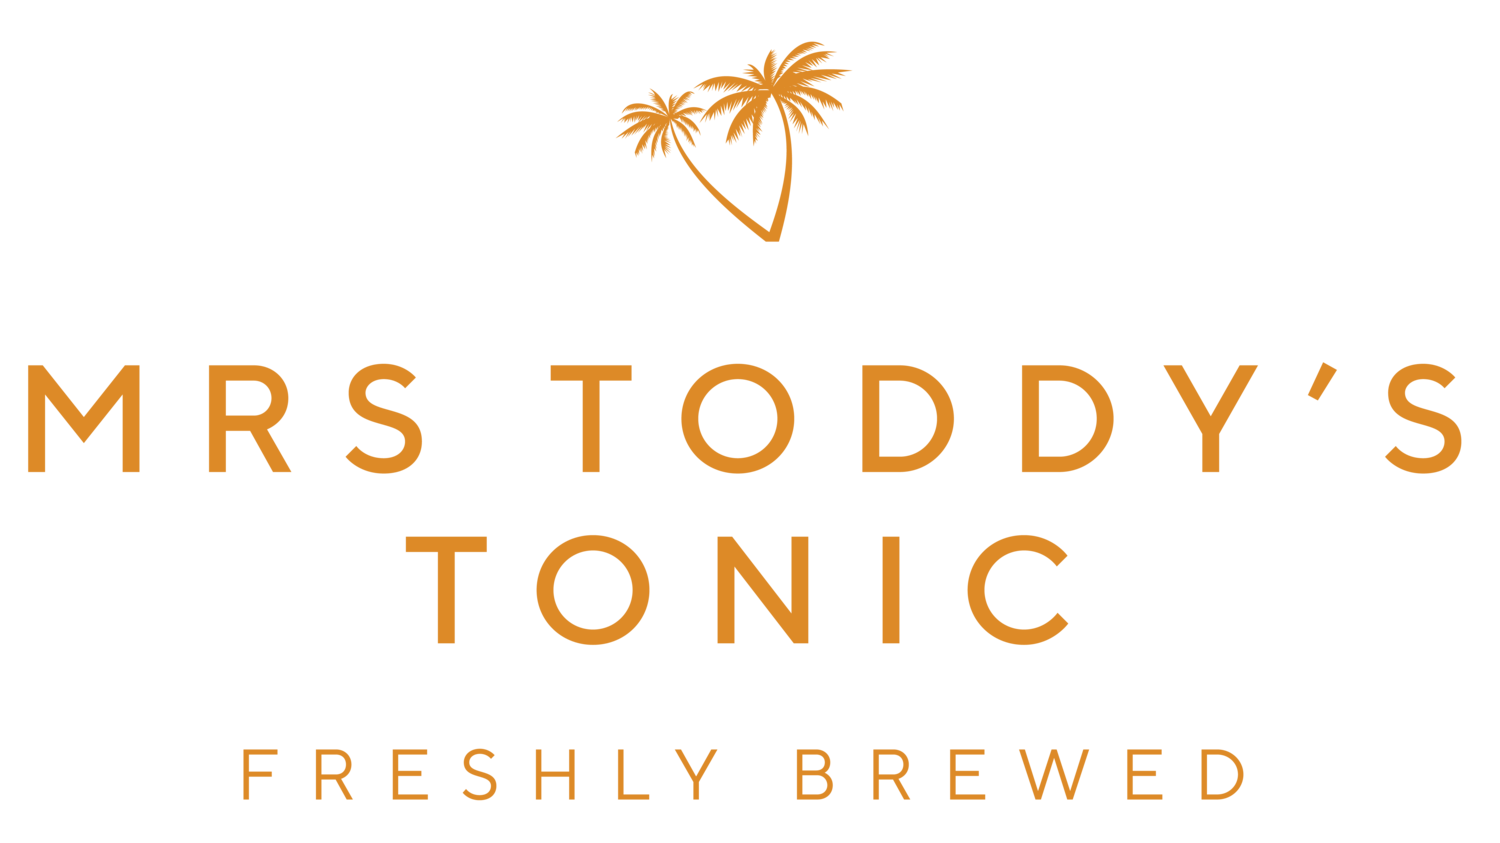 MRS TODDY'S TONIC